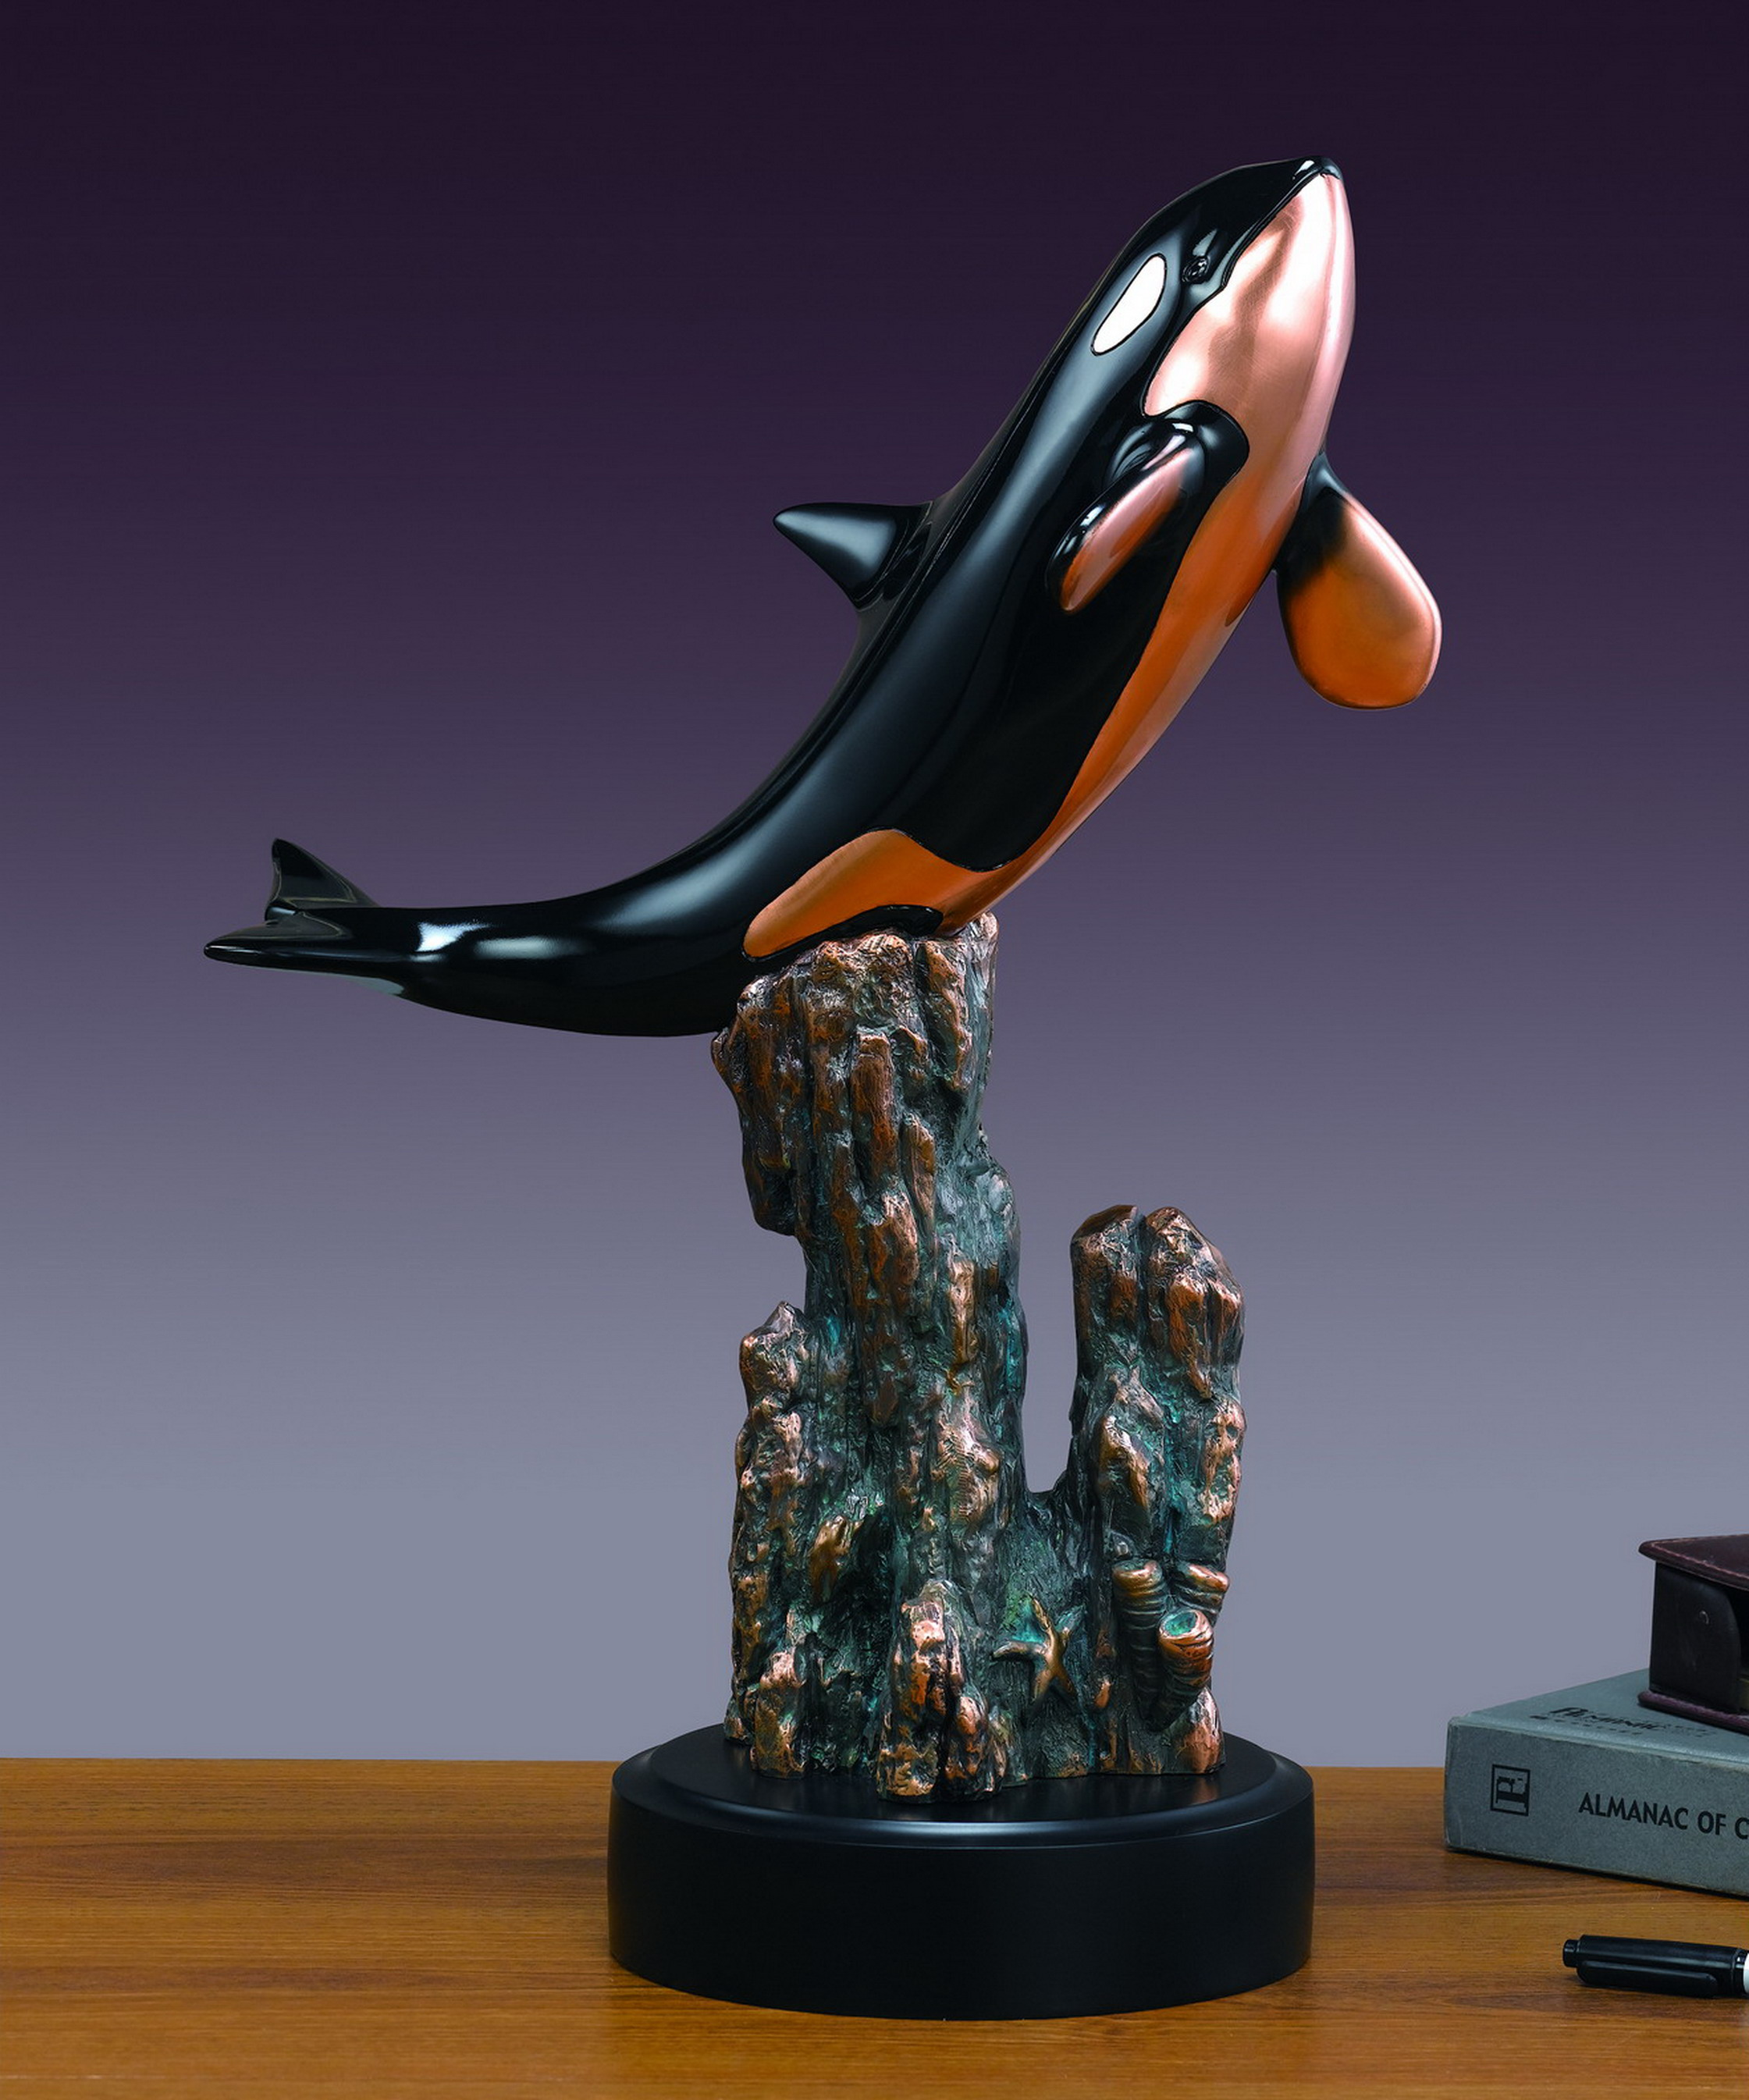 Orca & Coral Sculpture 18 Inches TALL!